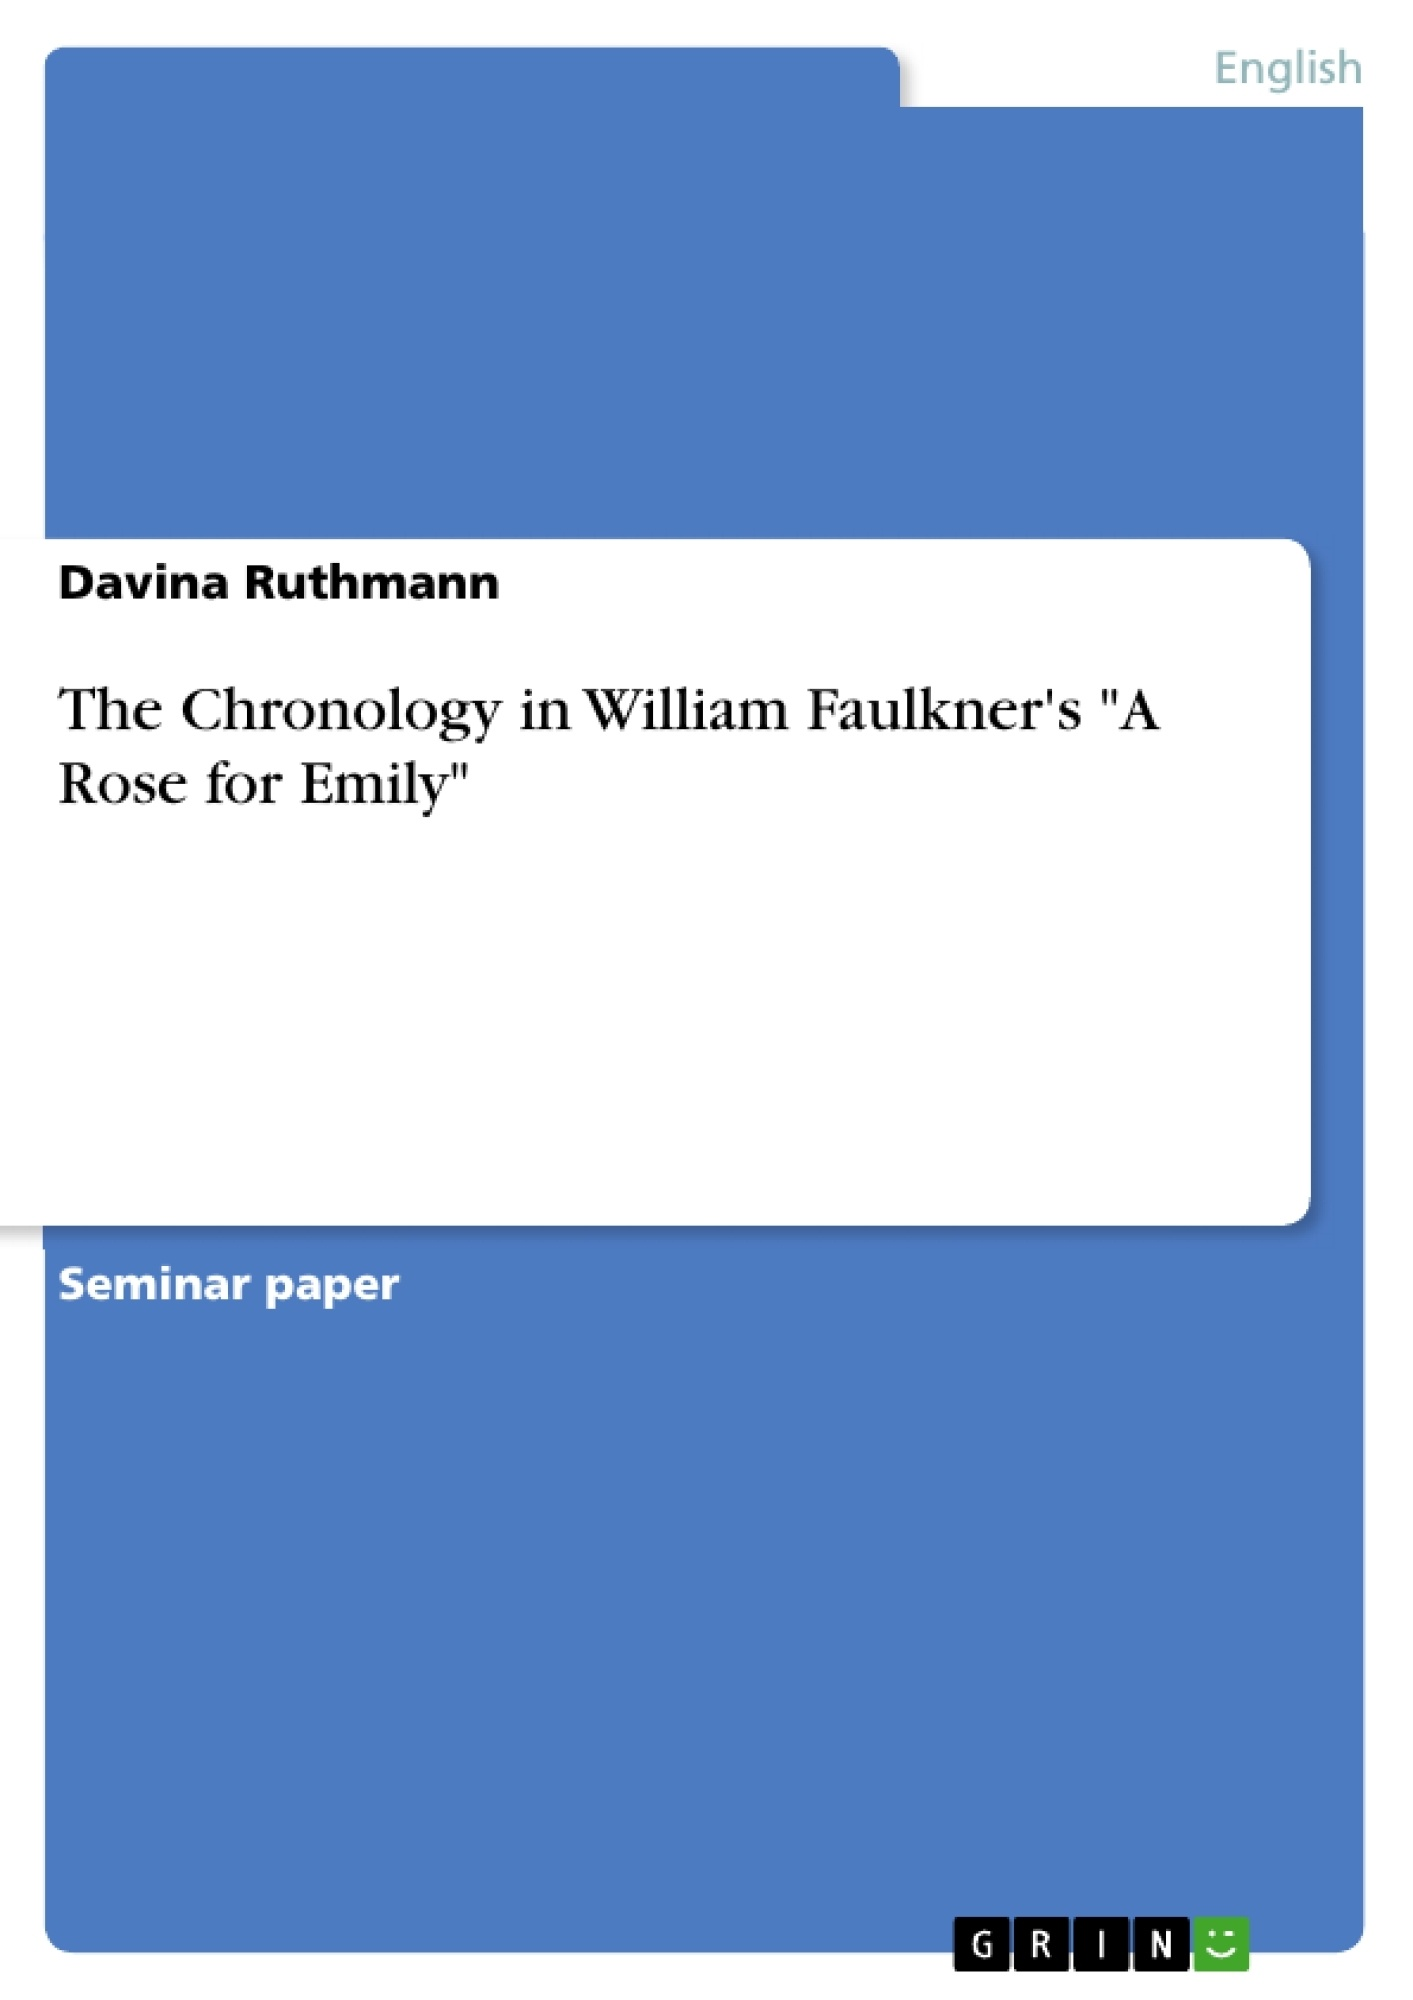 the chronology in william faulkner s a rose for emily publish  upload your own papers earn money and win an iphone x